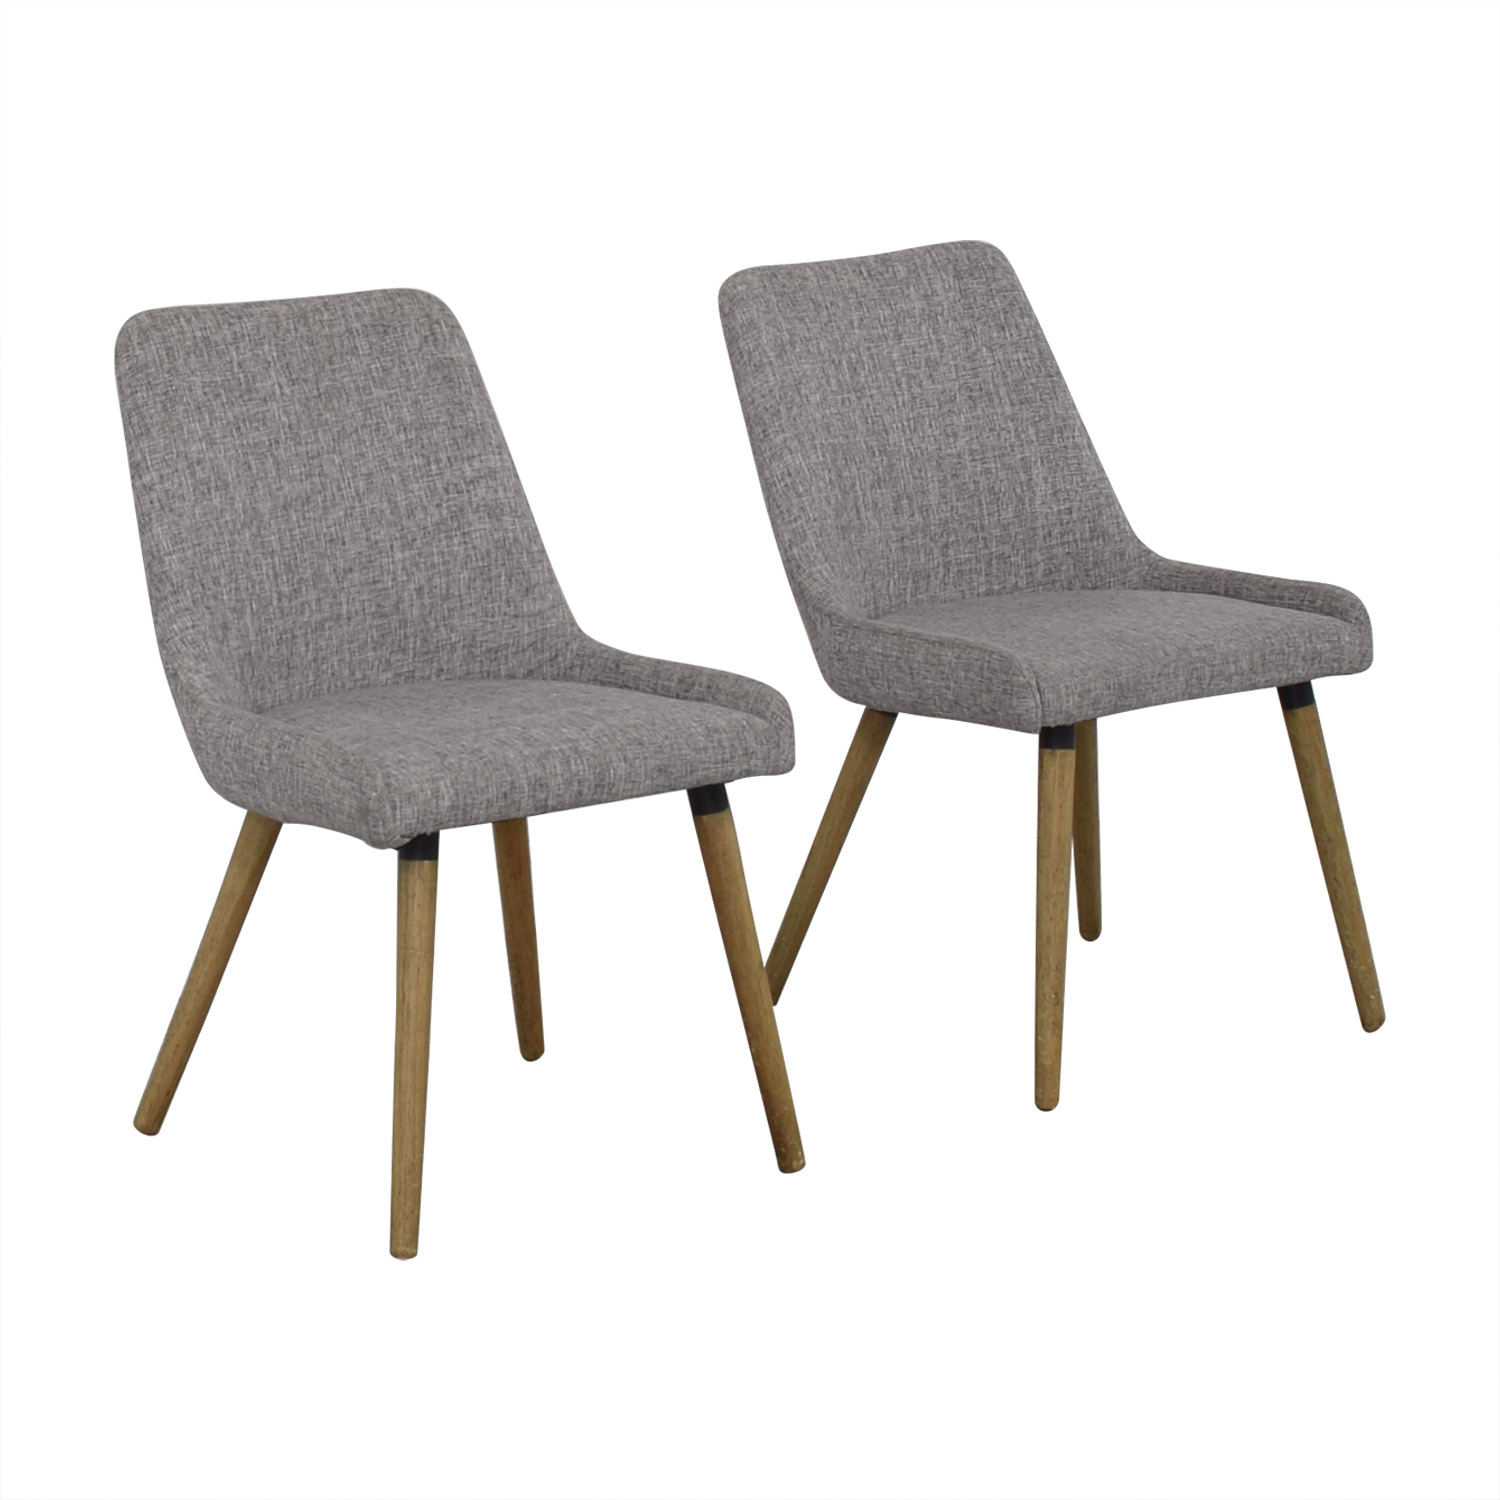 shop West Elm West Elm Mid-Century Upholstered Dining Chairs online